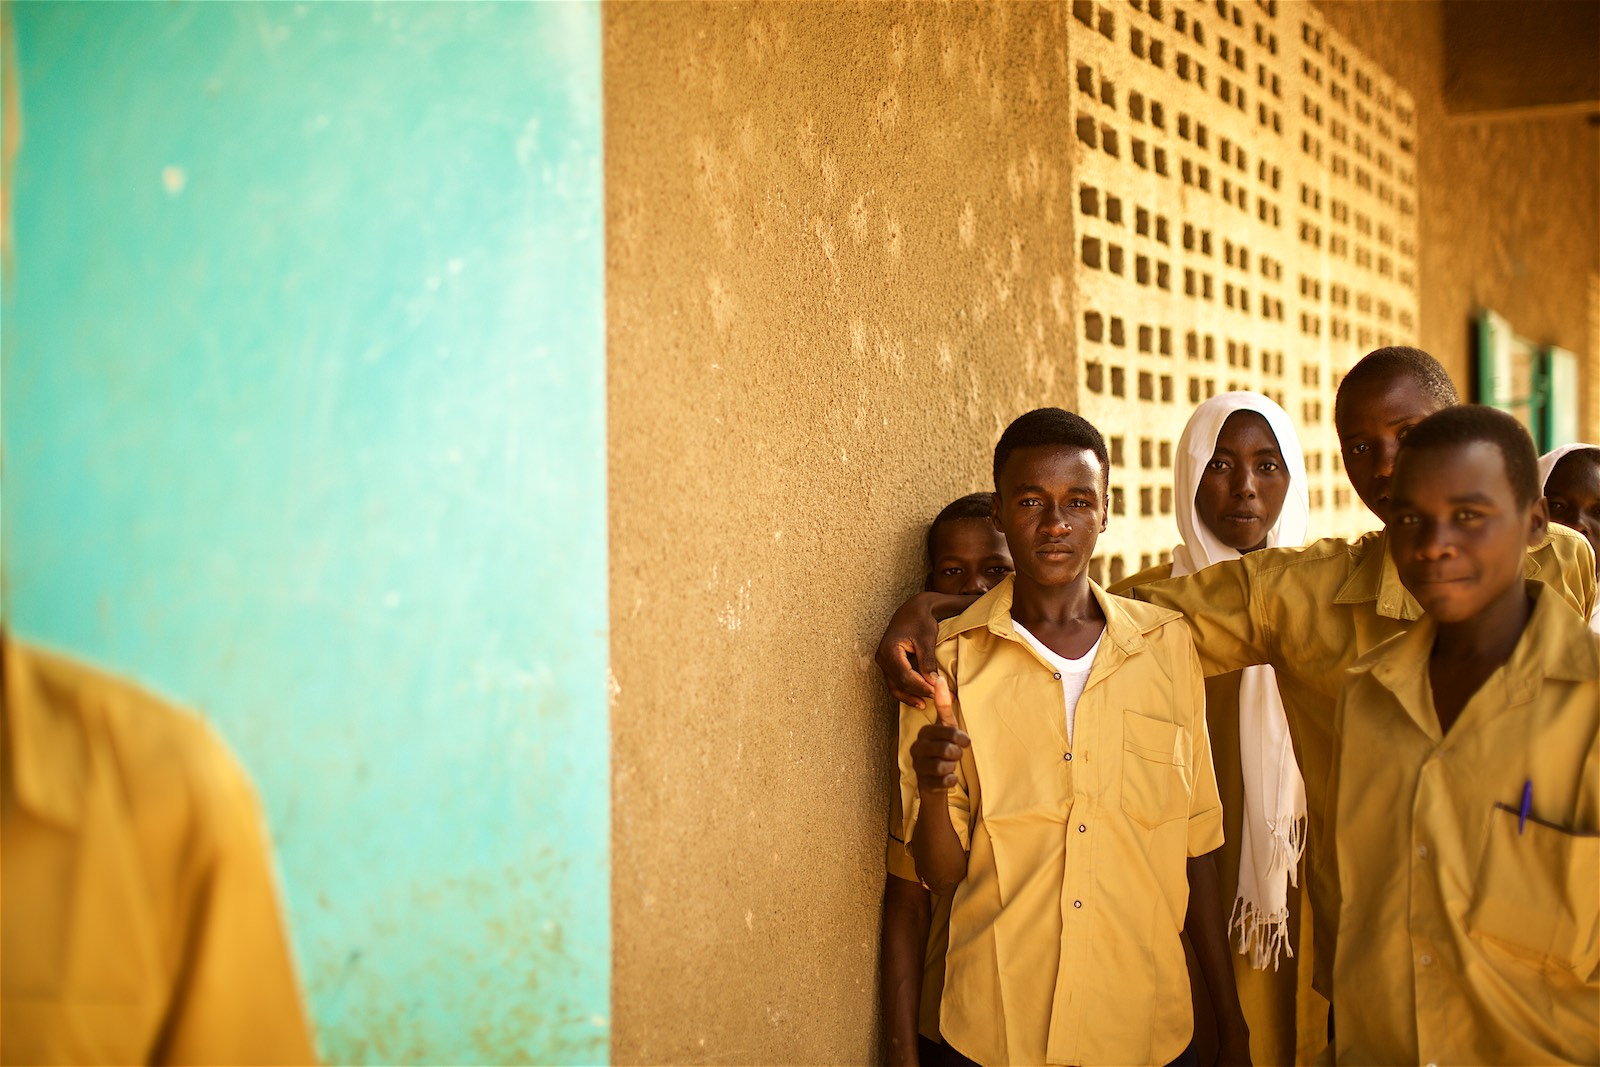 denis-bosnic-chad-school-jrs-jesuit-refugee-service-students-education-mercy-in-motion-25.jpg